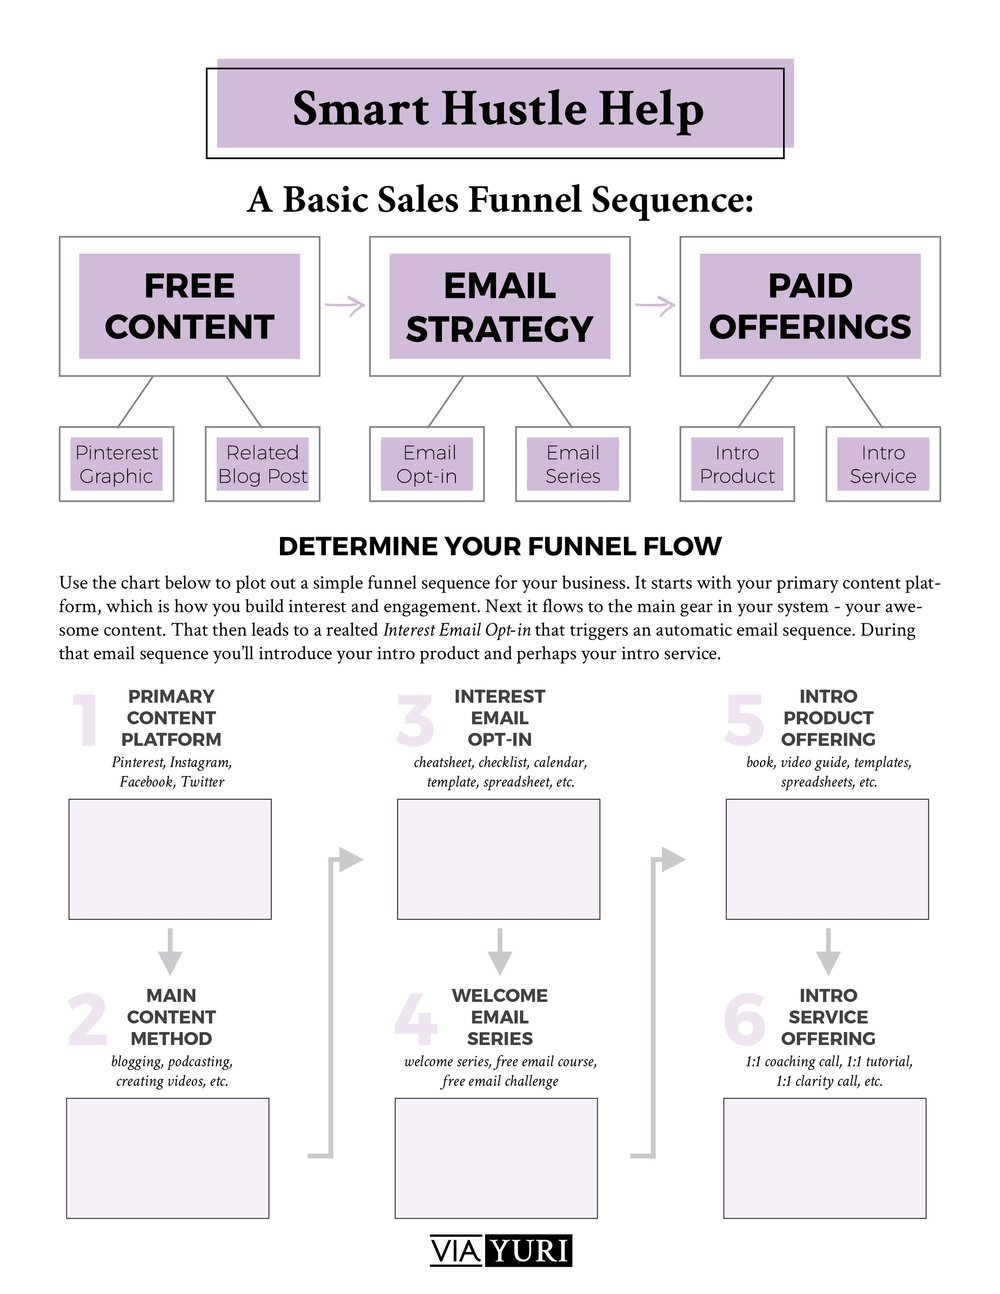 Form Your Funnel Worksheet || The Side Hustle Quickstart Roadmap Free Course Worksheets | viaYuri.com